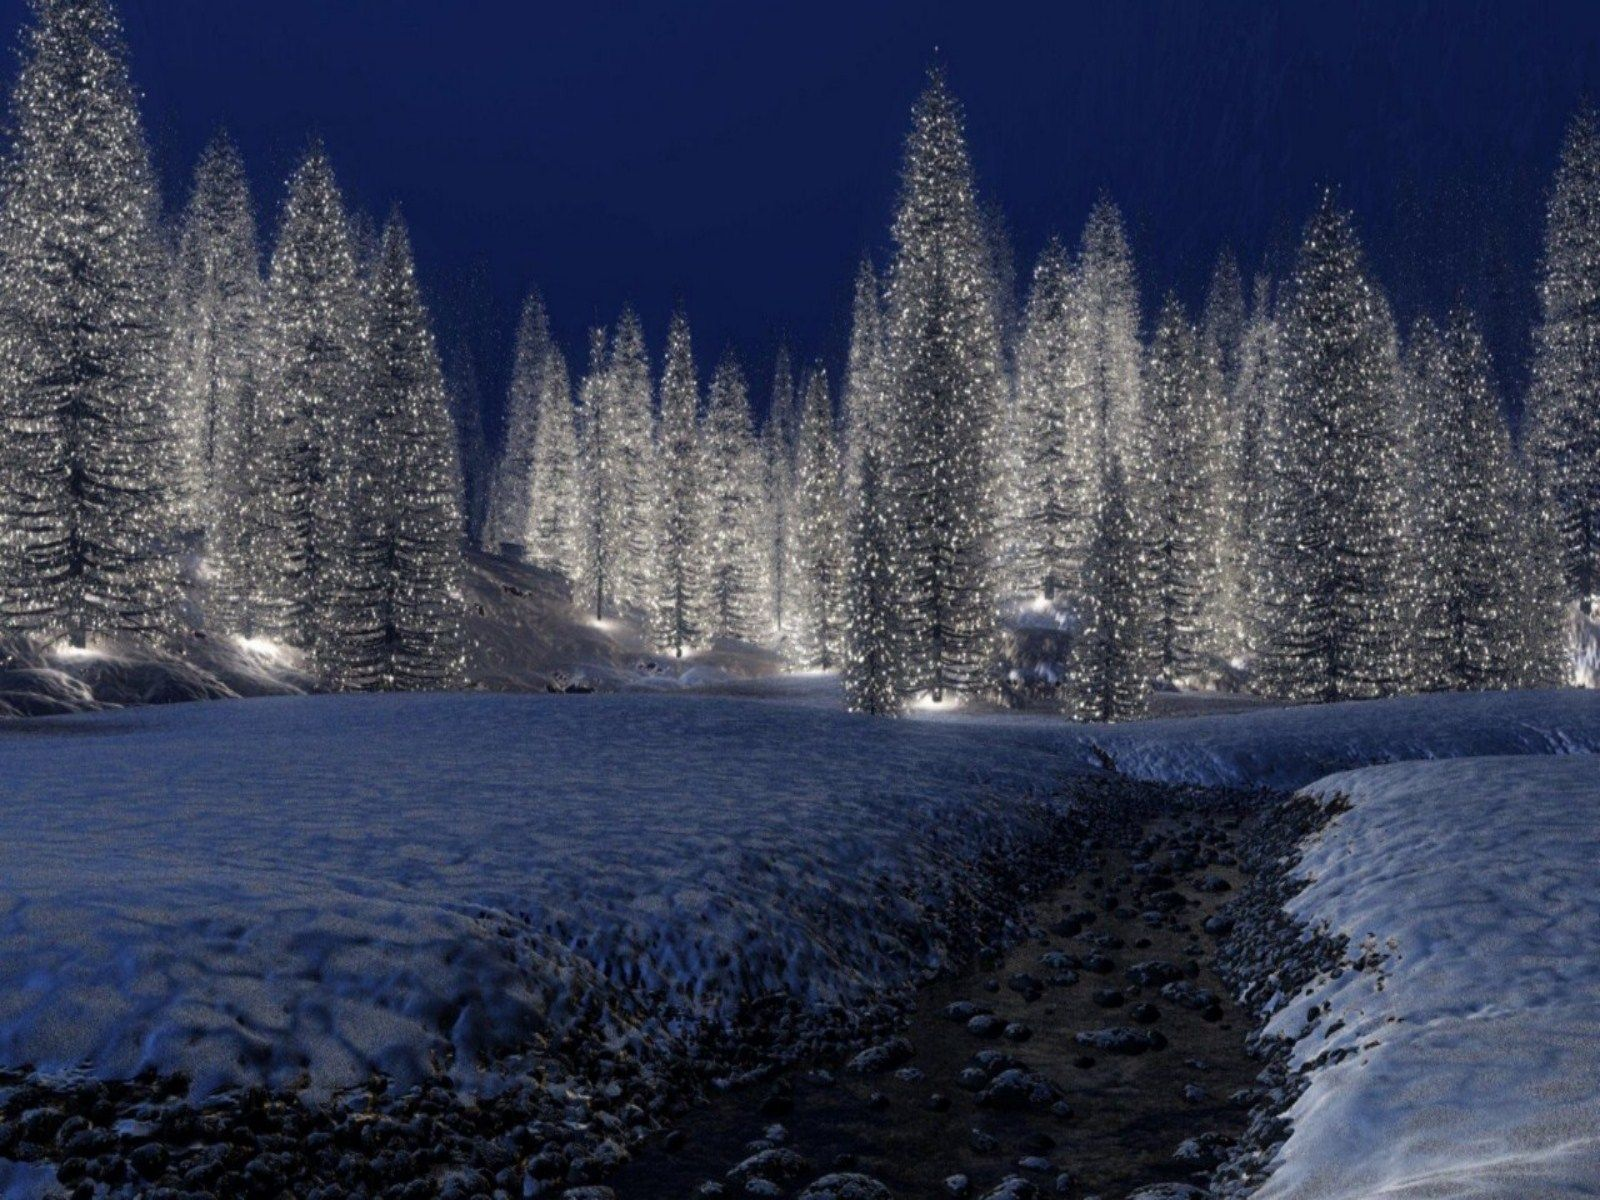 Christmas scenery free download hd snowy christmas scene for Christmas landscape images